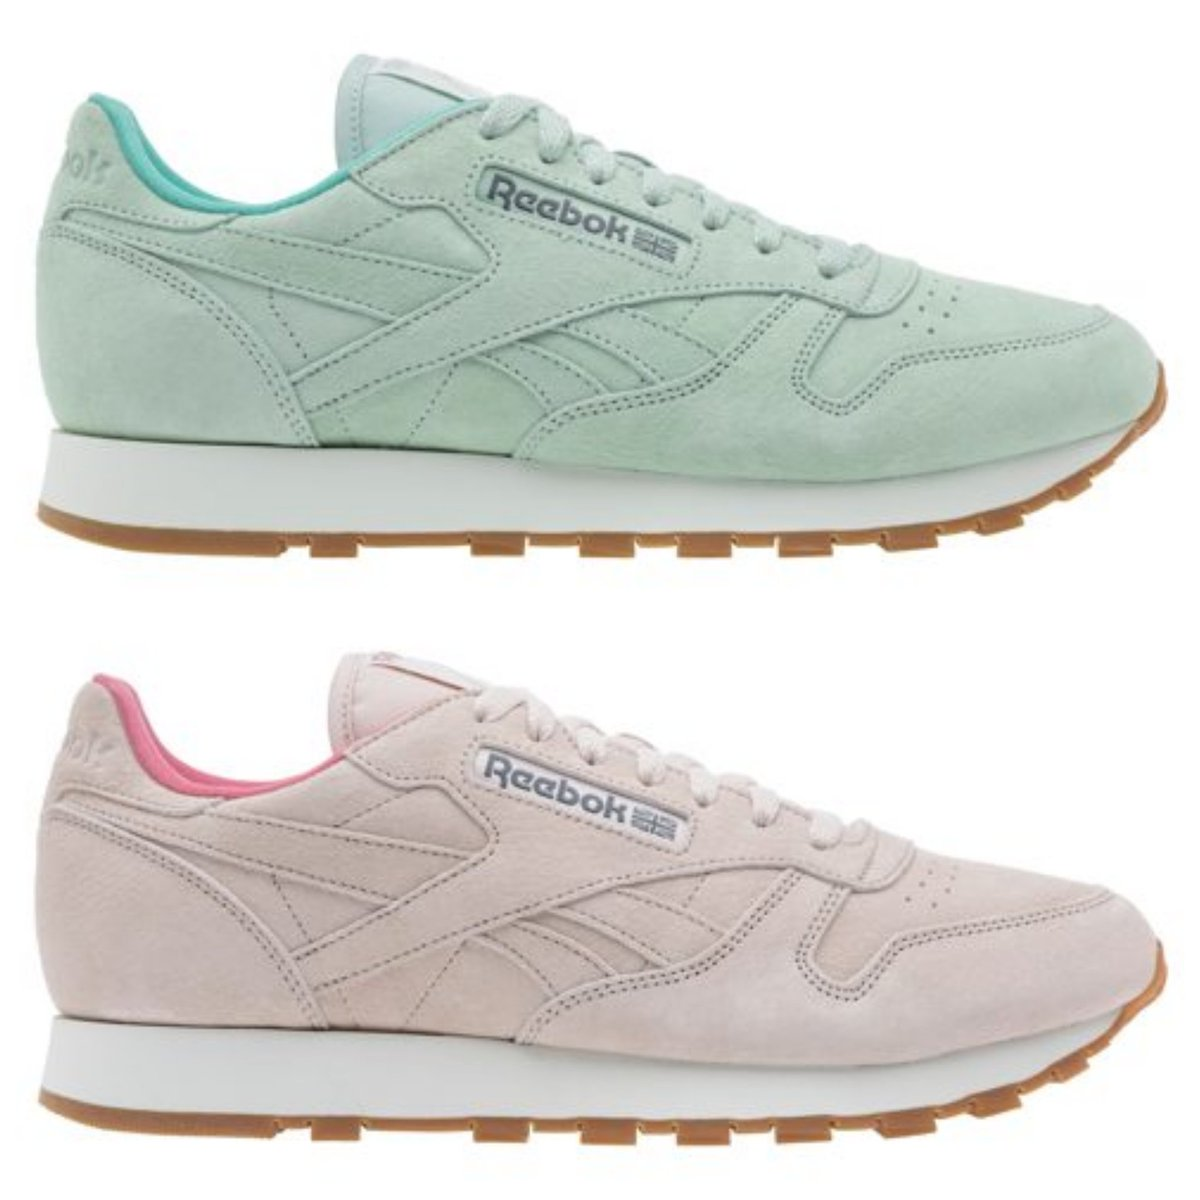 REEBOK CLASSIC X LINE FRIENDS - CLASSIC LEATHER Release 13 April 2018.  Booking in advance. Preorder only. RM490 (tba) Including shipping. 66ea5eadd